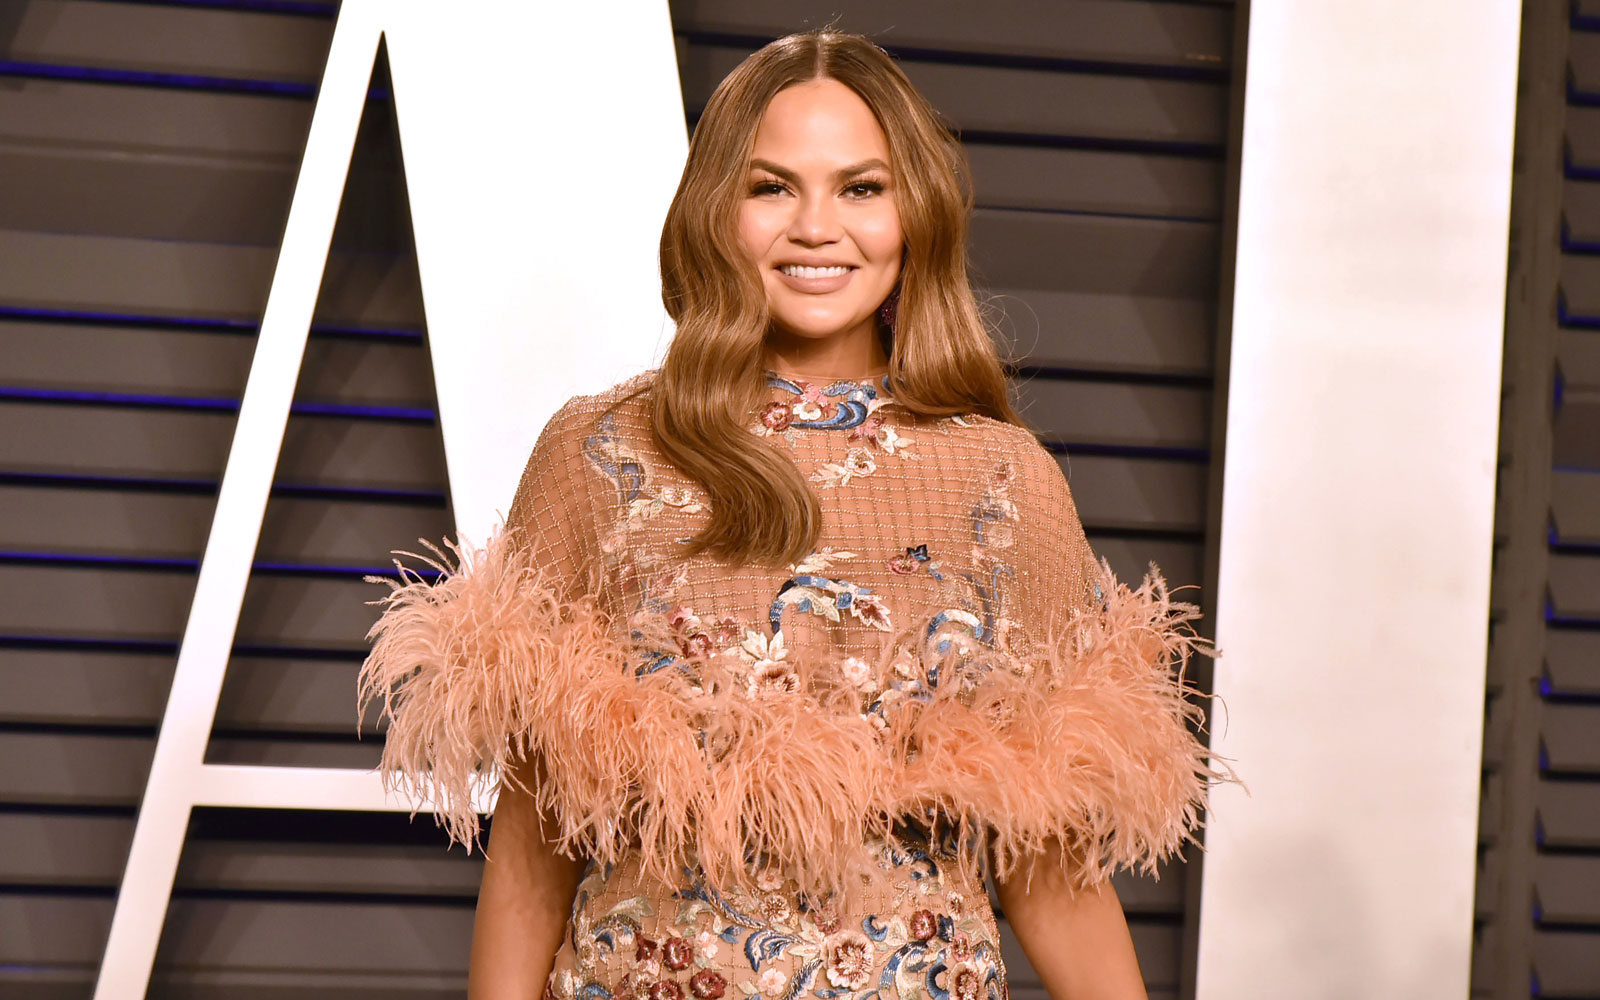 Chrissy Teigen Really Wants to Take an RV Trip Across America With John Legend